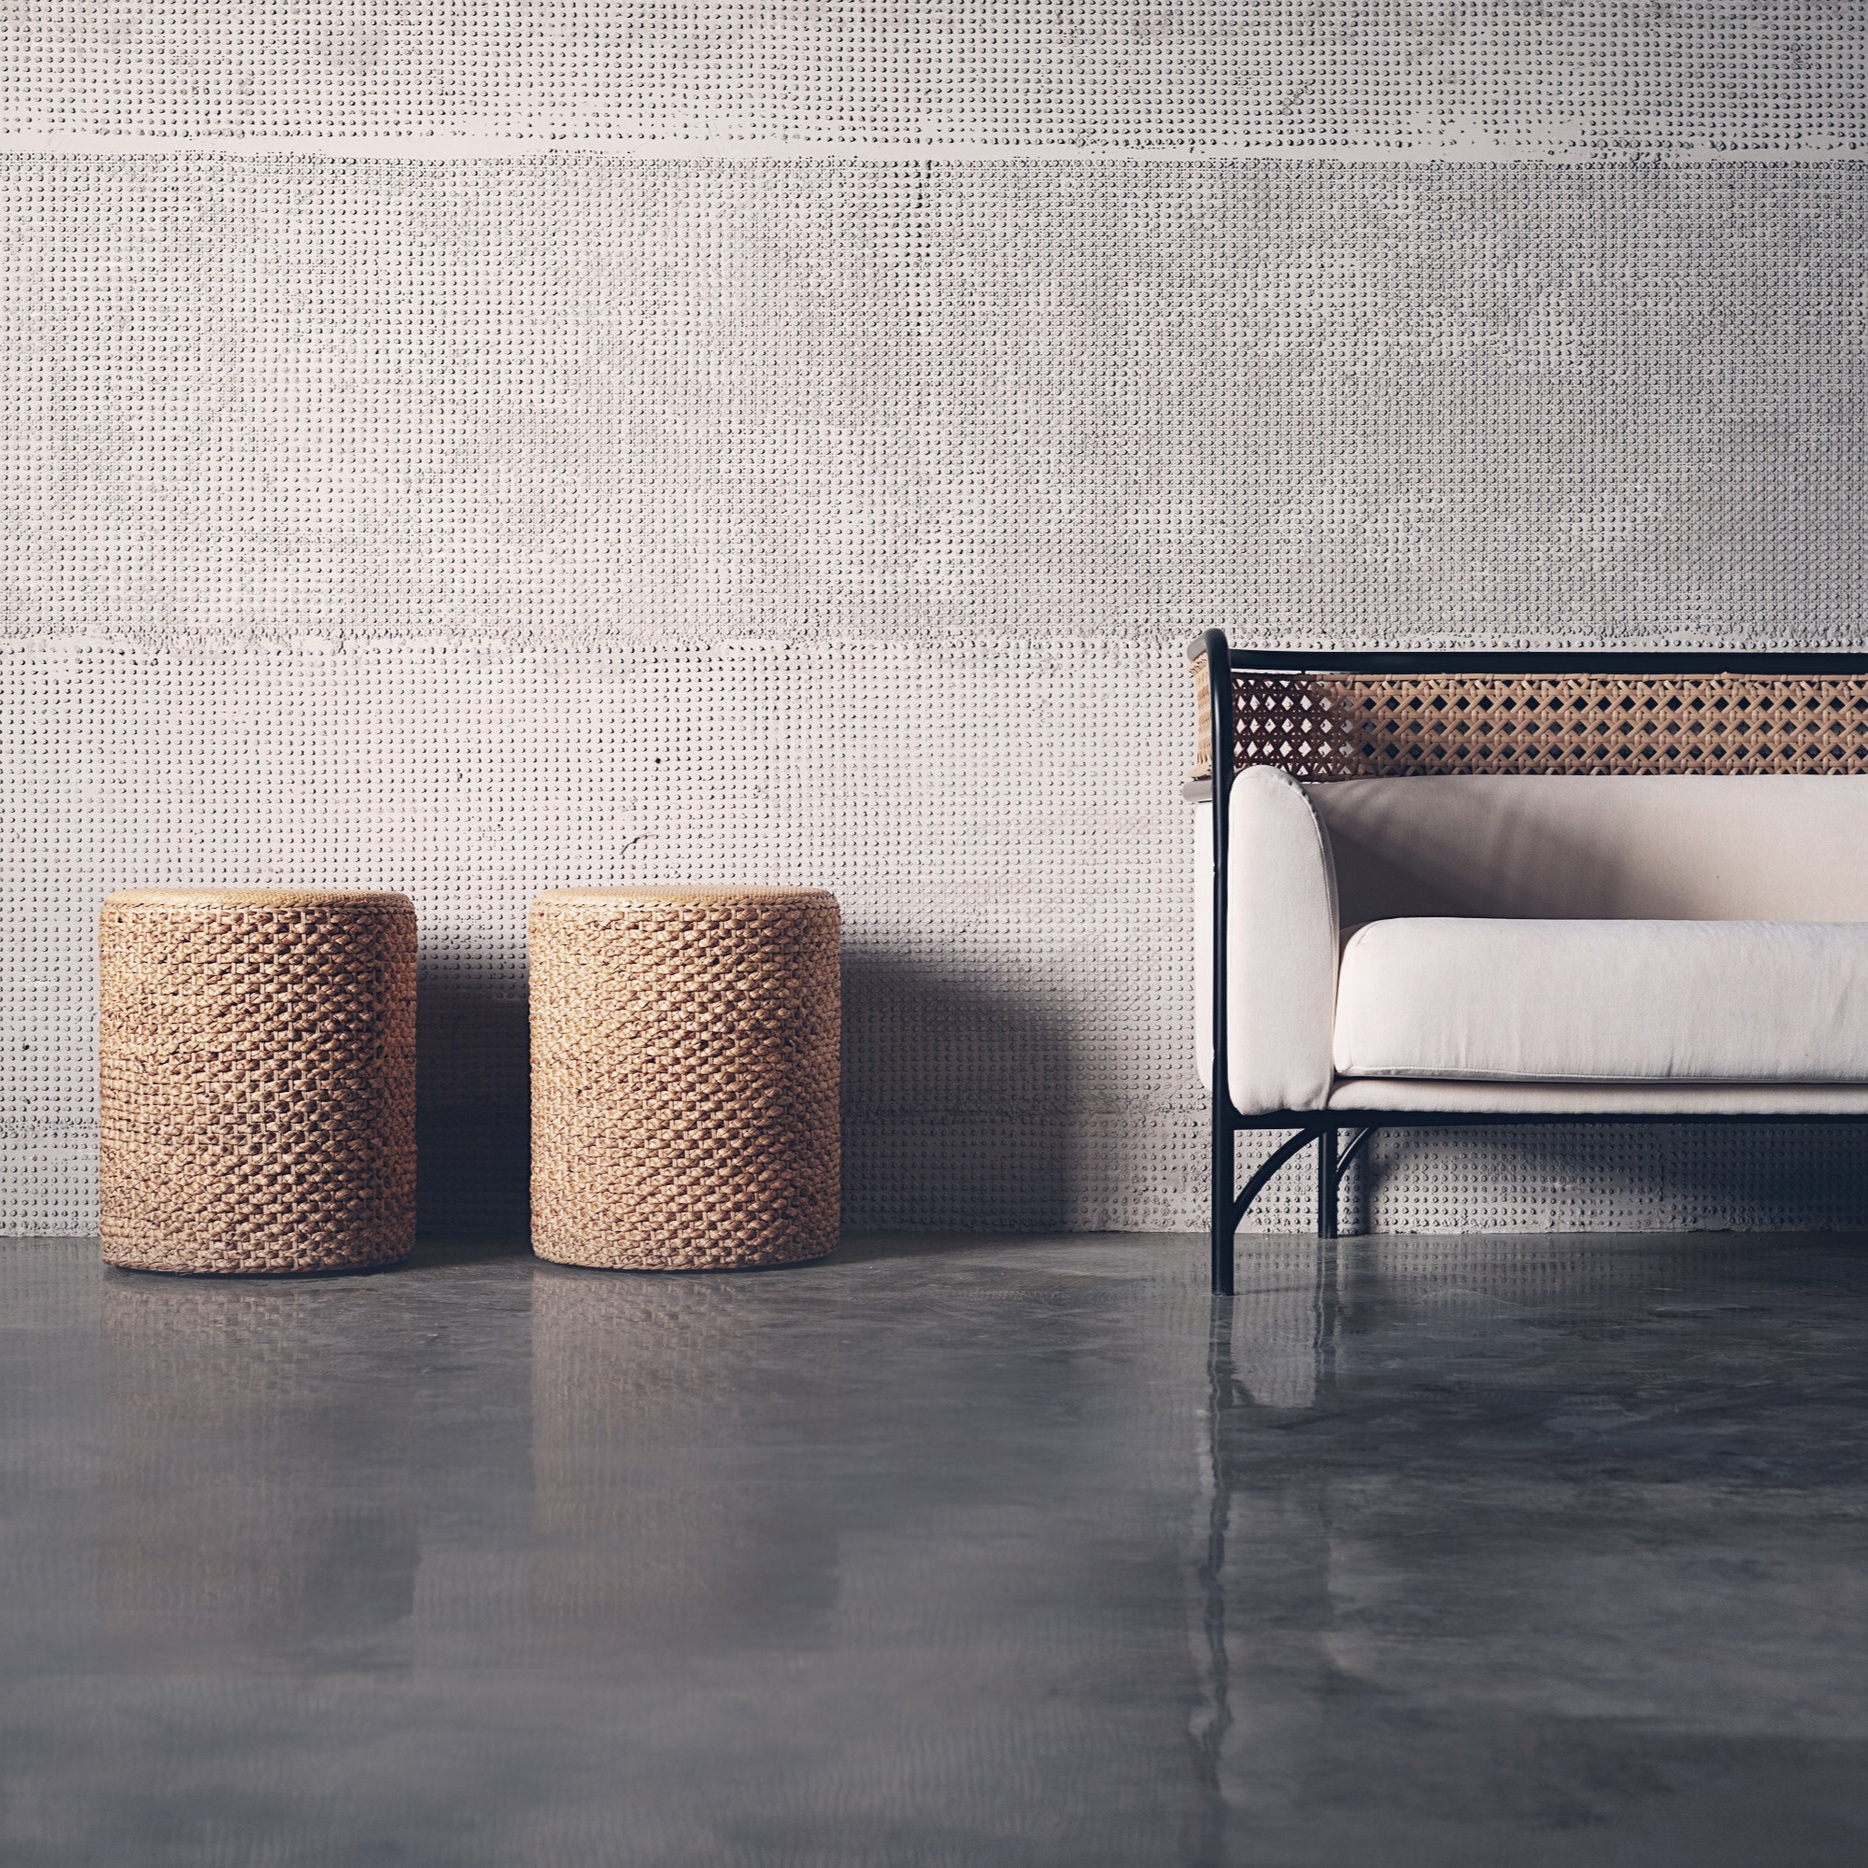 Light+%26+Shadow+-+Rattan+and+concrete+wall+finished+in+weaved+rattan+texture+photo+by+The+Other+Place.jpg